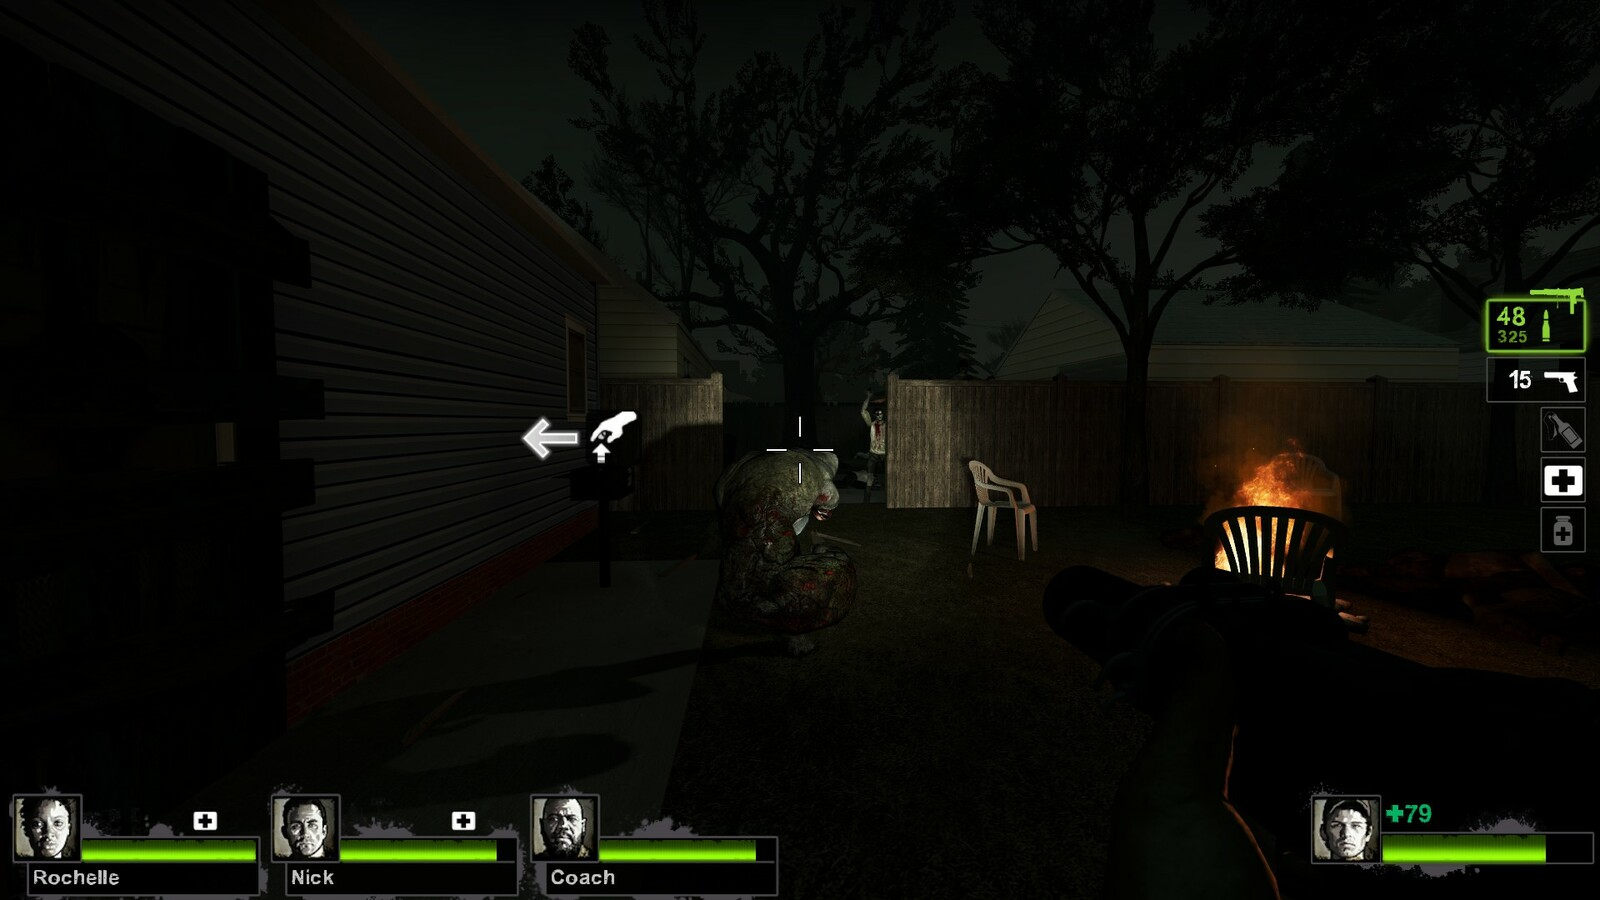 A charger spawner for players, this charger will smash through the fence and surprise players who go to the right of the safe house direction marker on the house. This then allows players to move through to the next backyard from the opening.